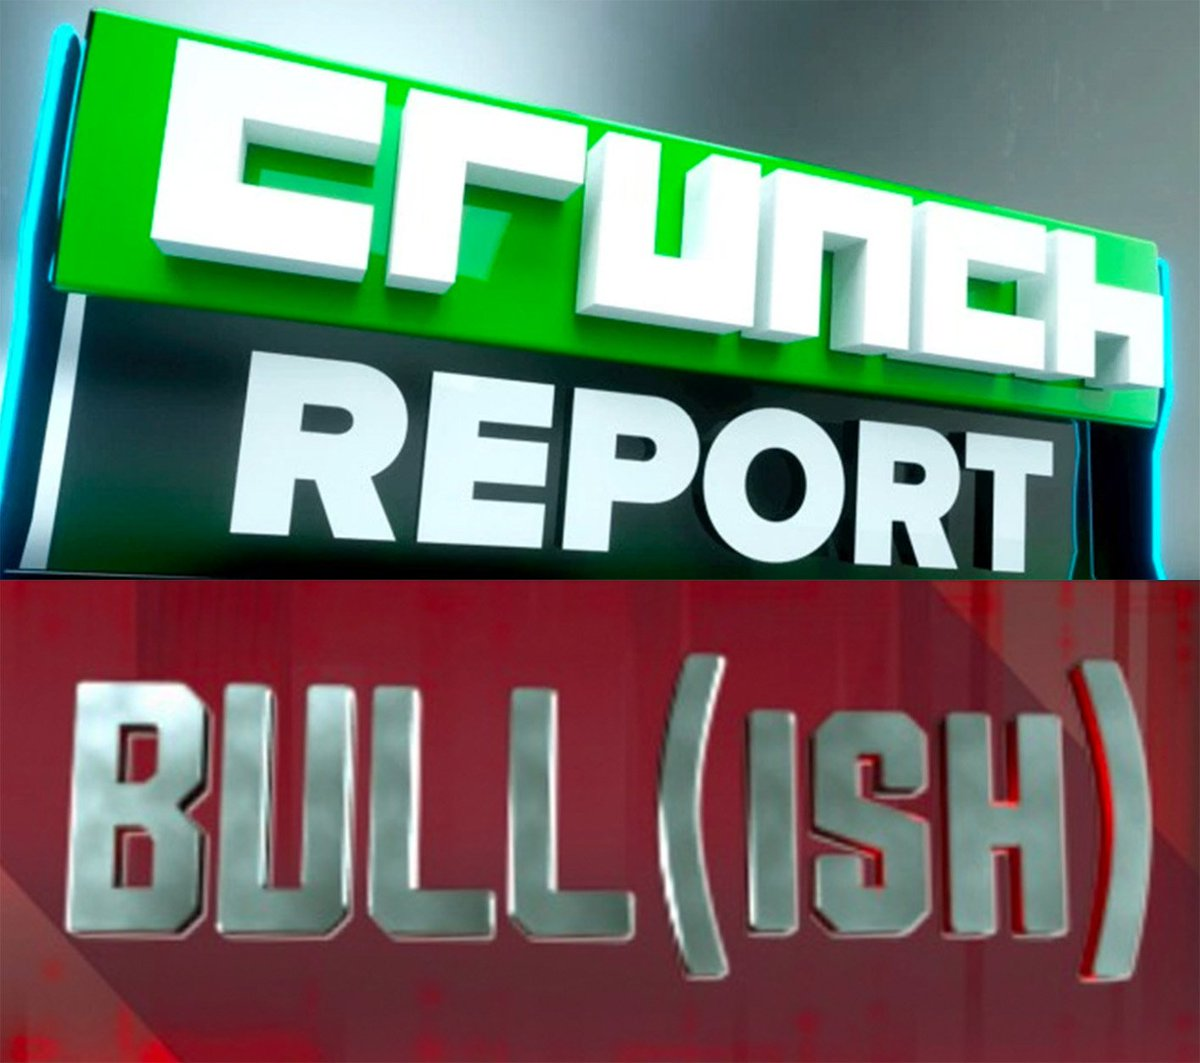 You can listen to Crunch Report and Bullish on iTunes